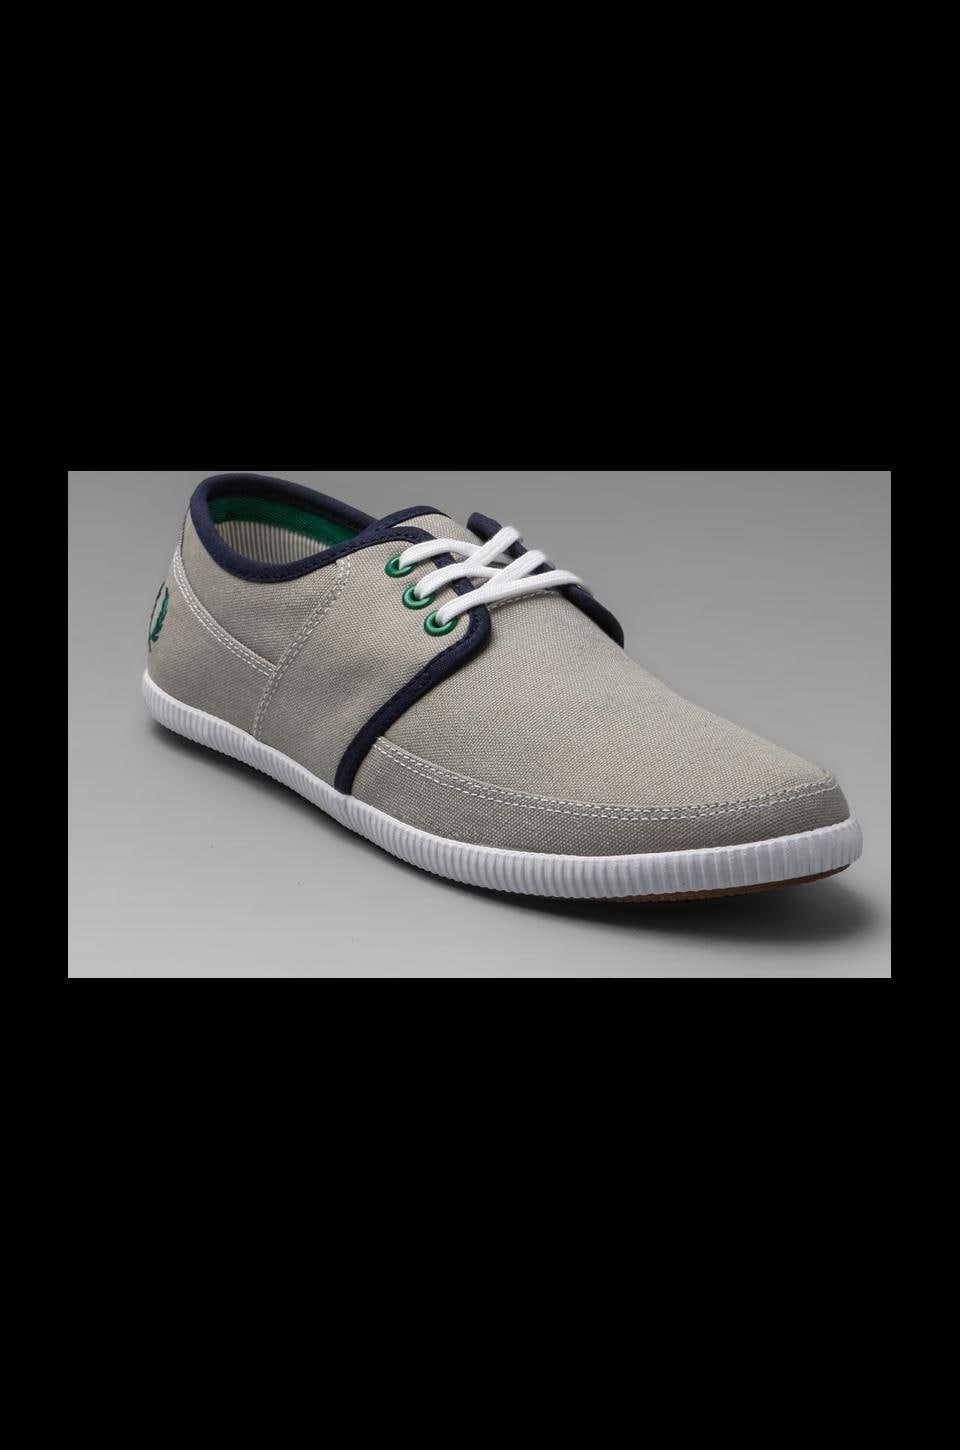 Fred Perry Tonic Canvas in Chrome/Privet/Carbon Blue